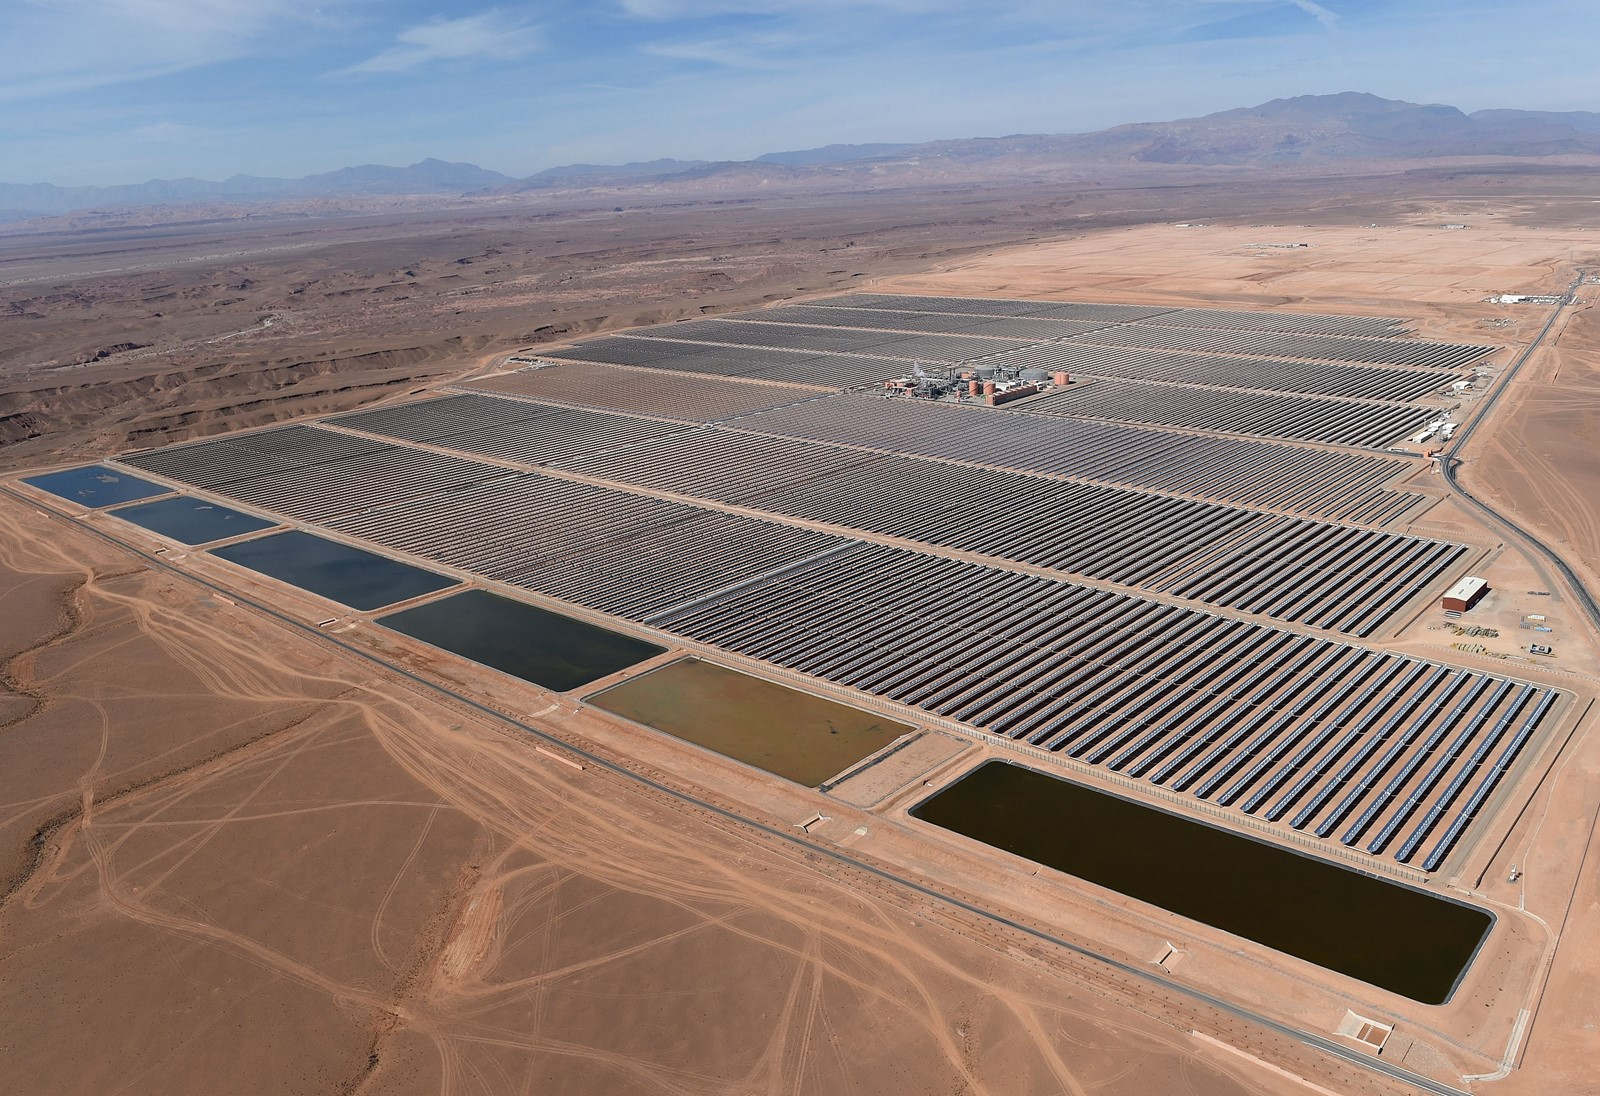 The extra water from energy farms may have major ecological, environmental and societal effects, scientists say. Above, solar mirrors in Morocco. — Photograph: Fadel Senna/Agence France-Presse/Getty Images.